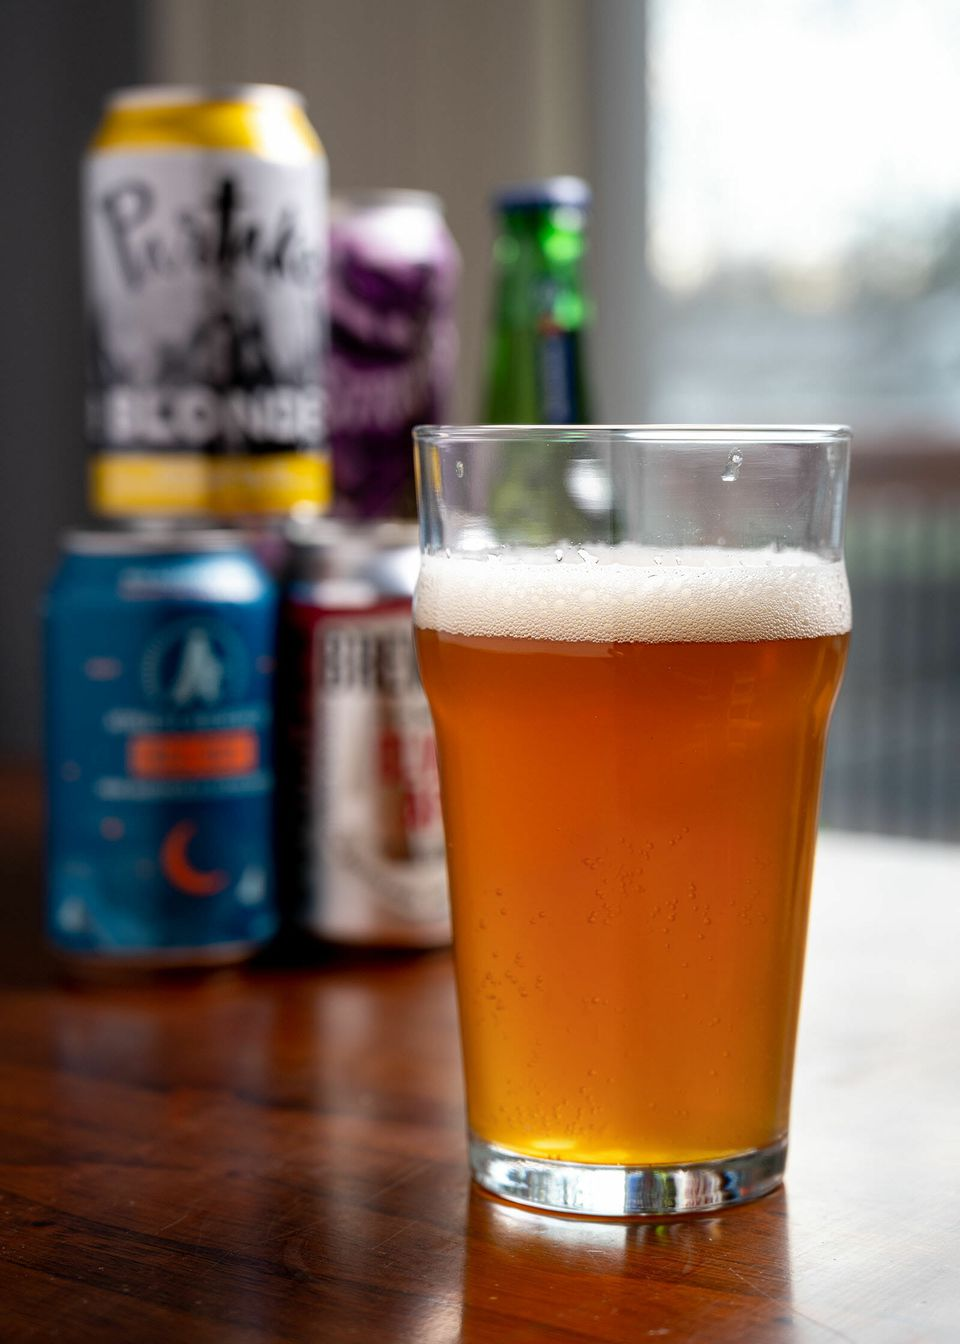 A glass of beer with cans of non-alcoholic beers stacked behind it.